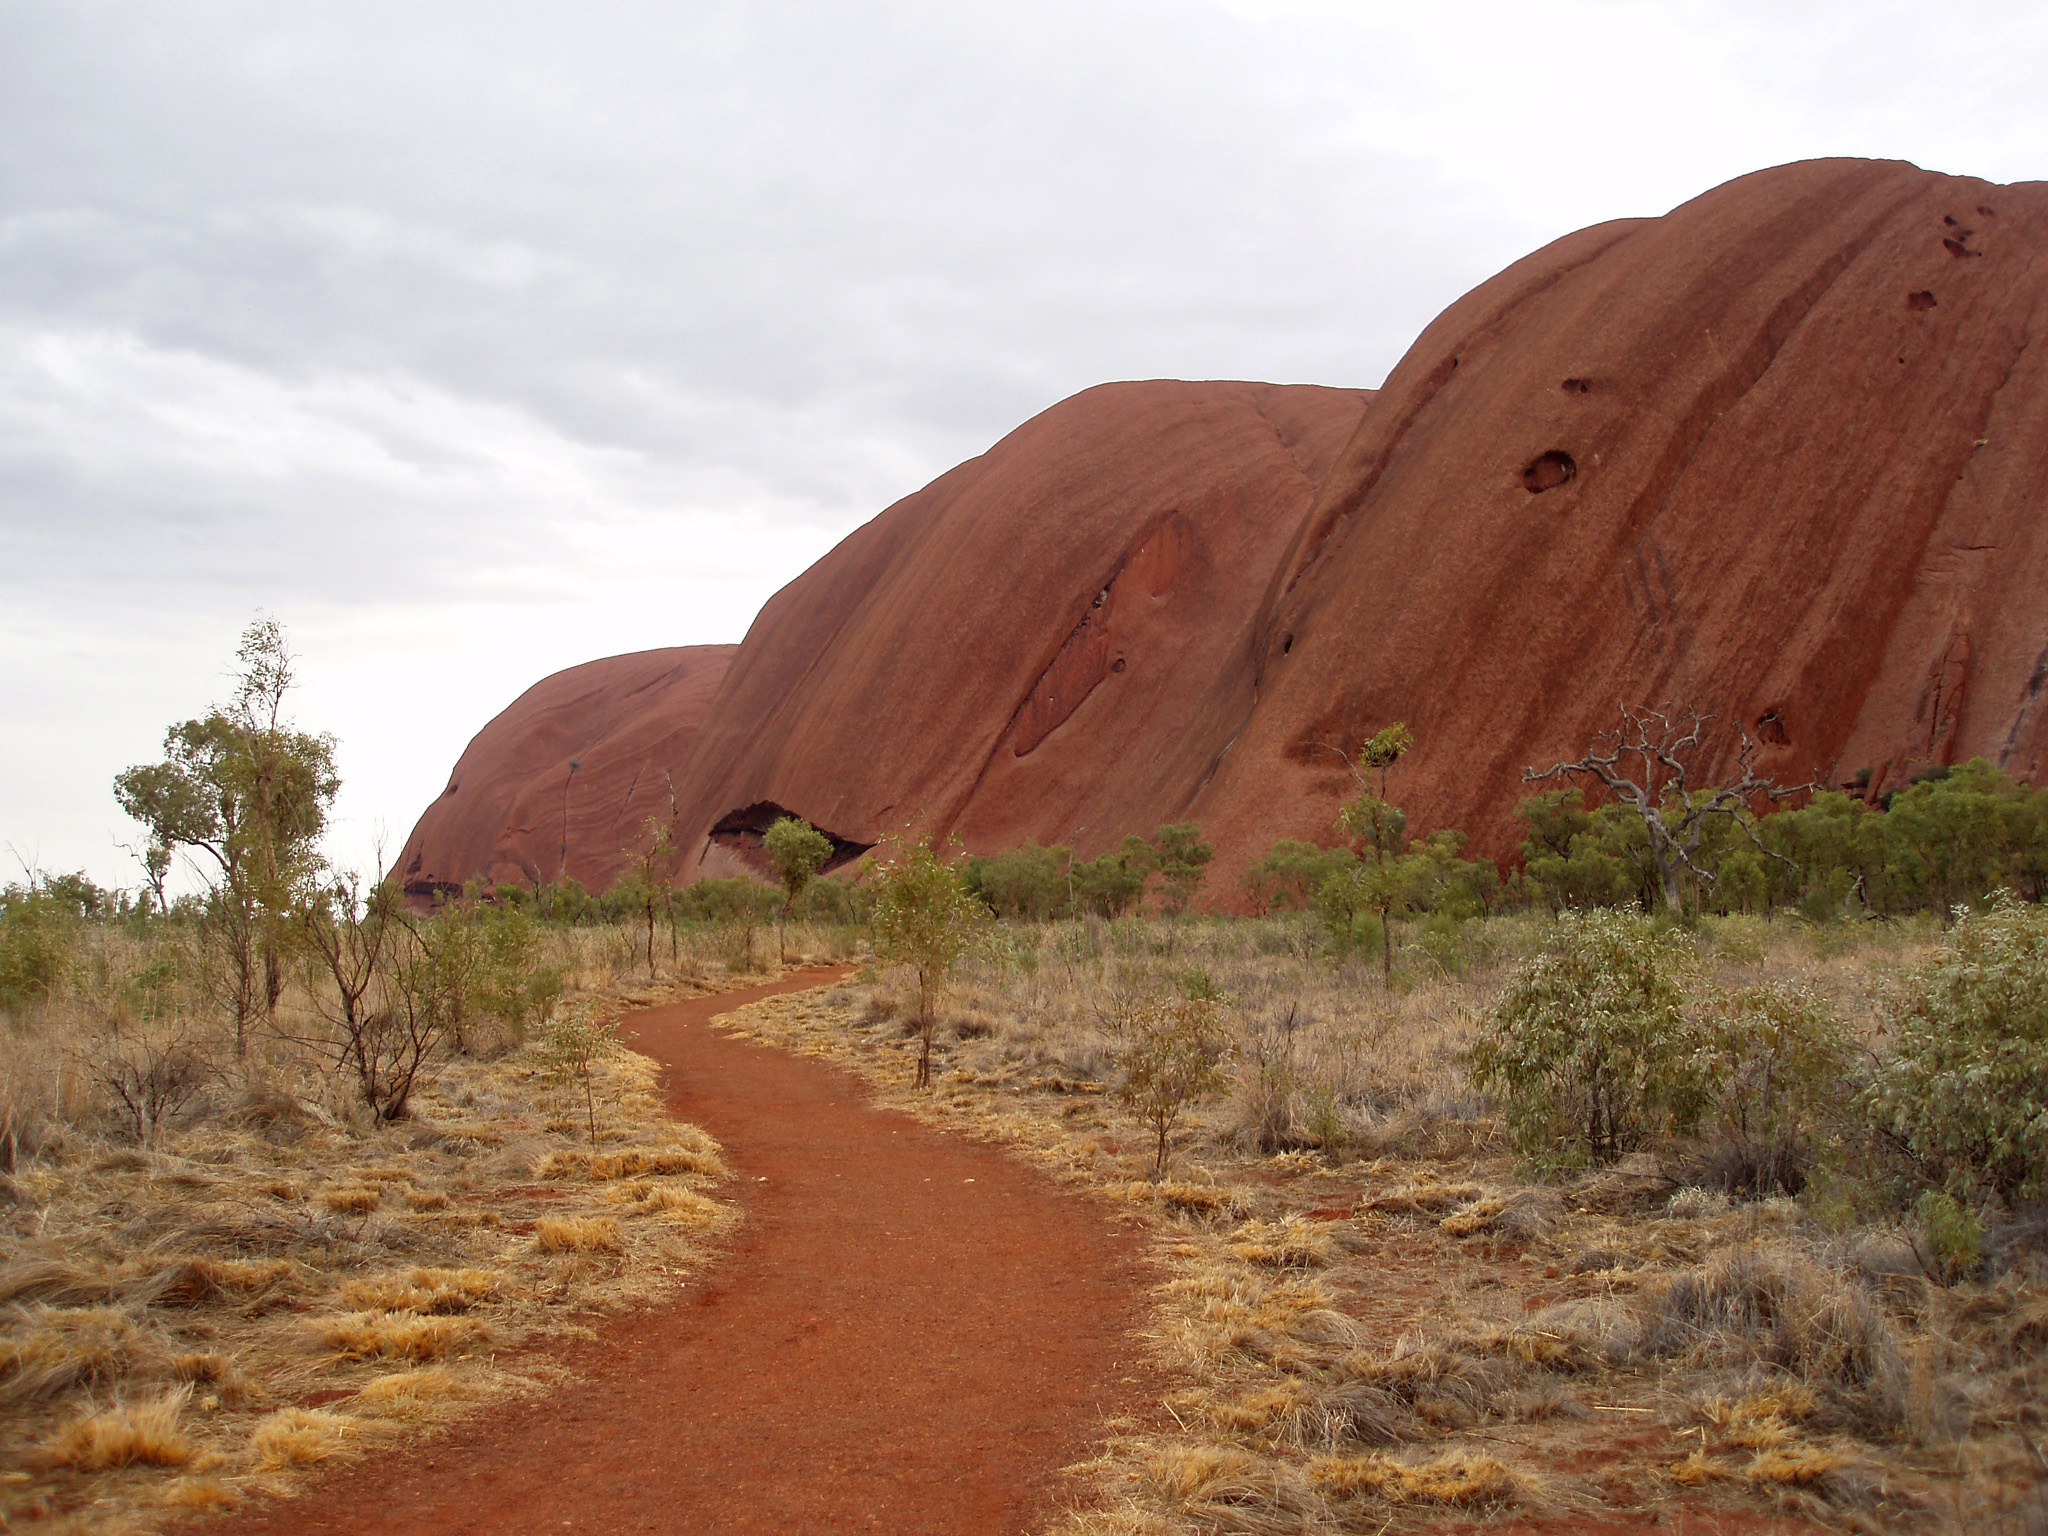 Close up View of Famous Australian Nature Icon Uluru with Grassy Landscape on Very Light Blue Sky Background.